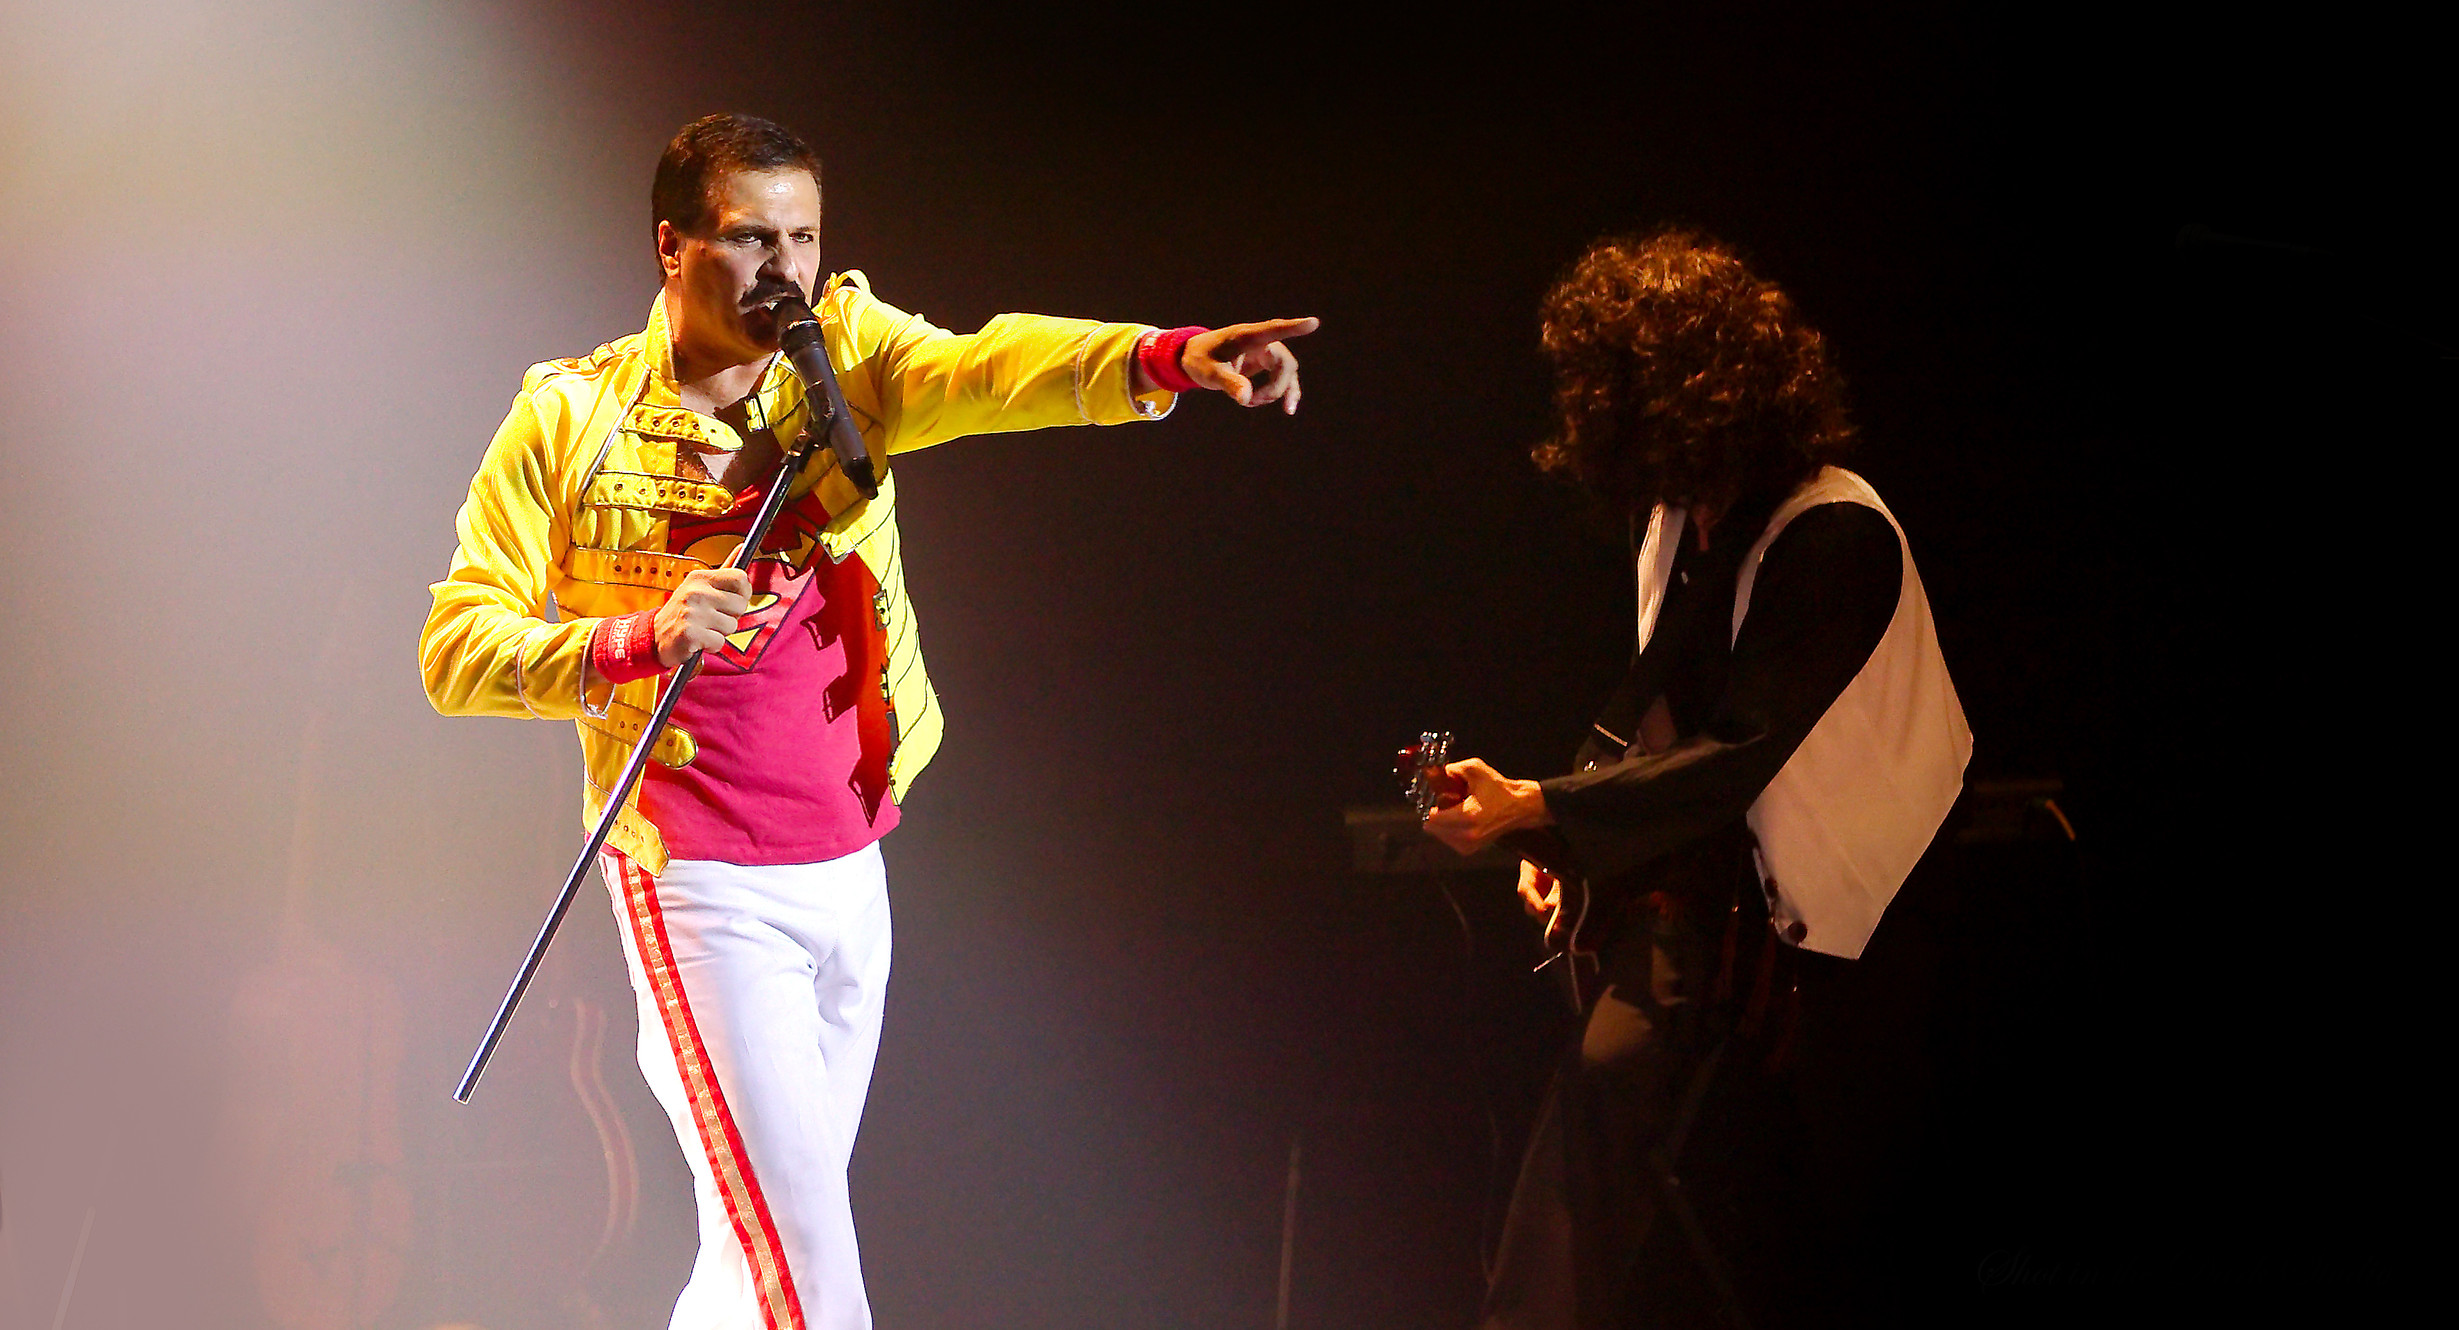 EPK of Simply Queen - Canadian Tribute Band